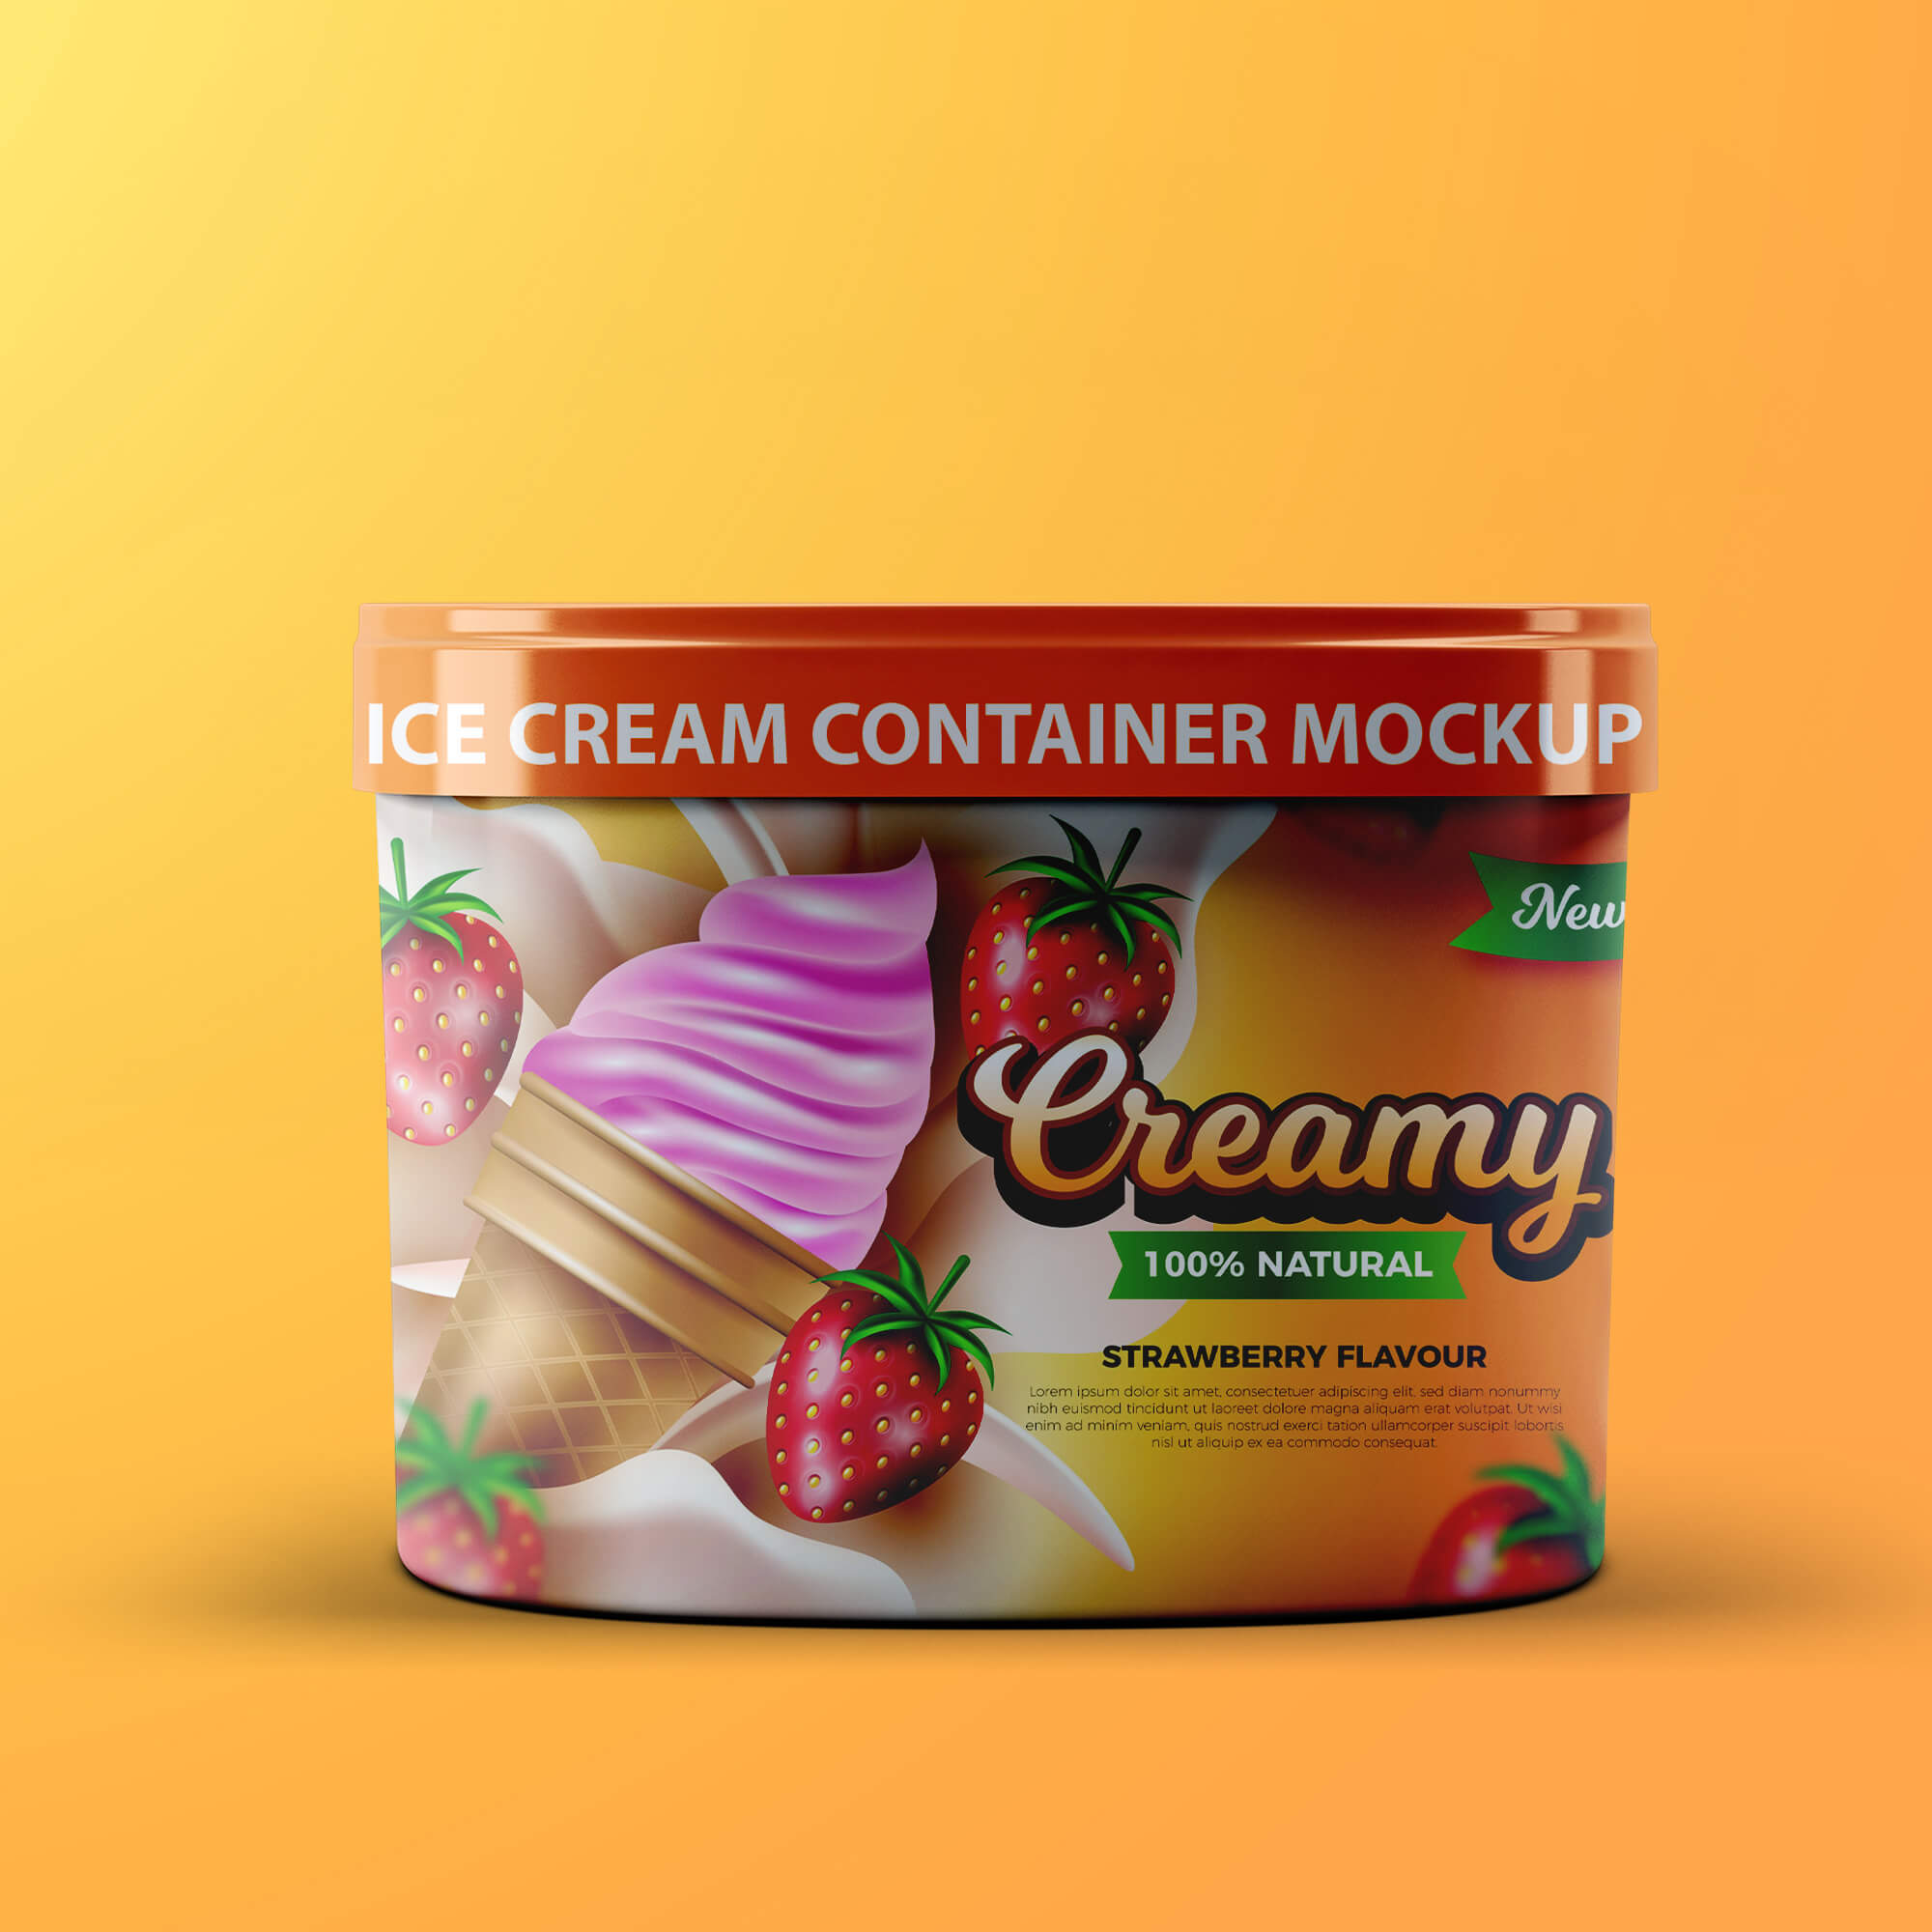 Design Free Ice Cream Container Mockup PSD Template